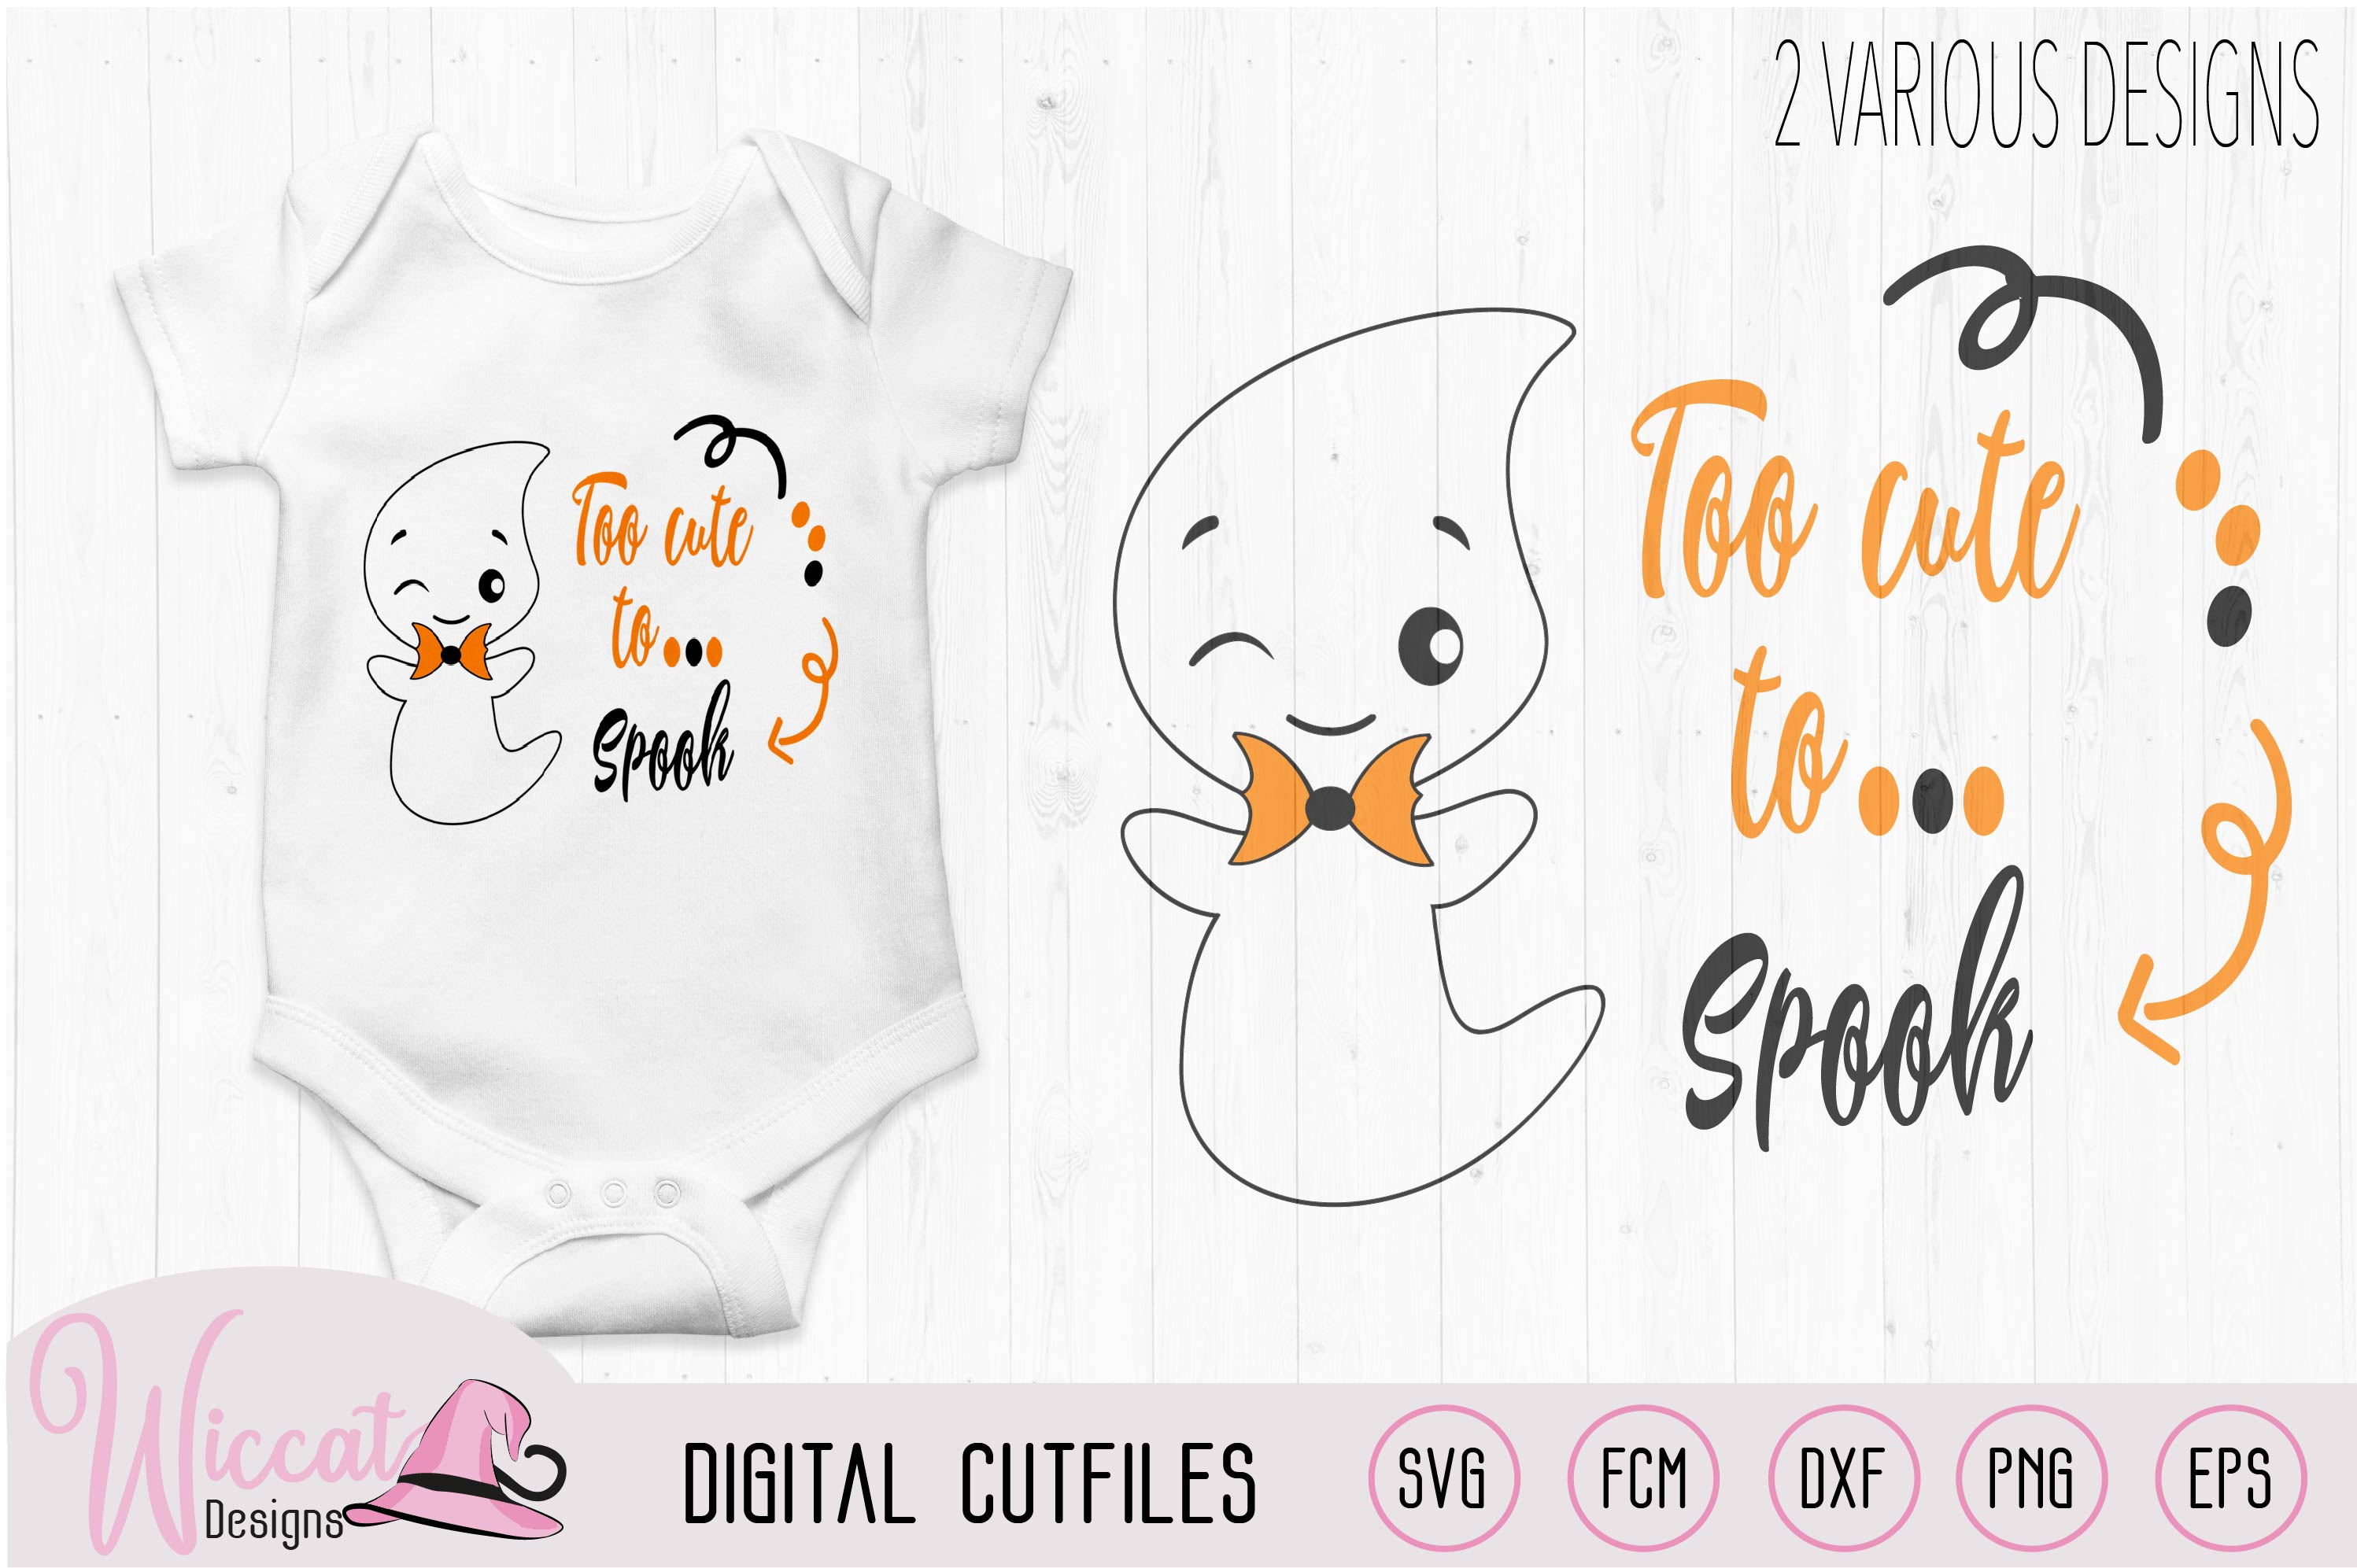 Too Cute to spook, Cute ghost quote example image 1